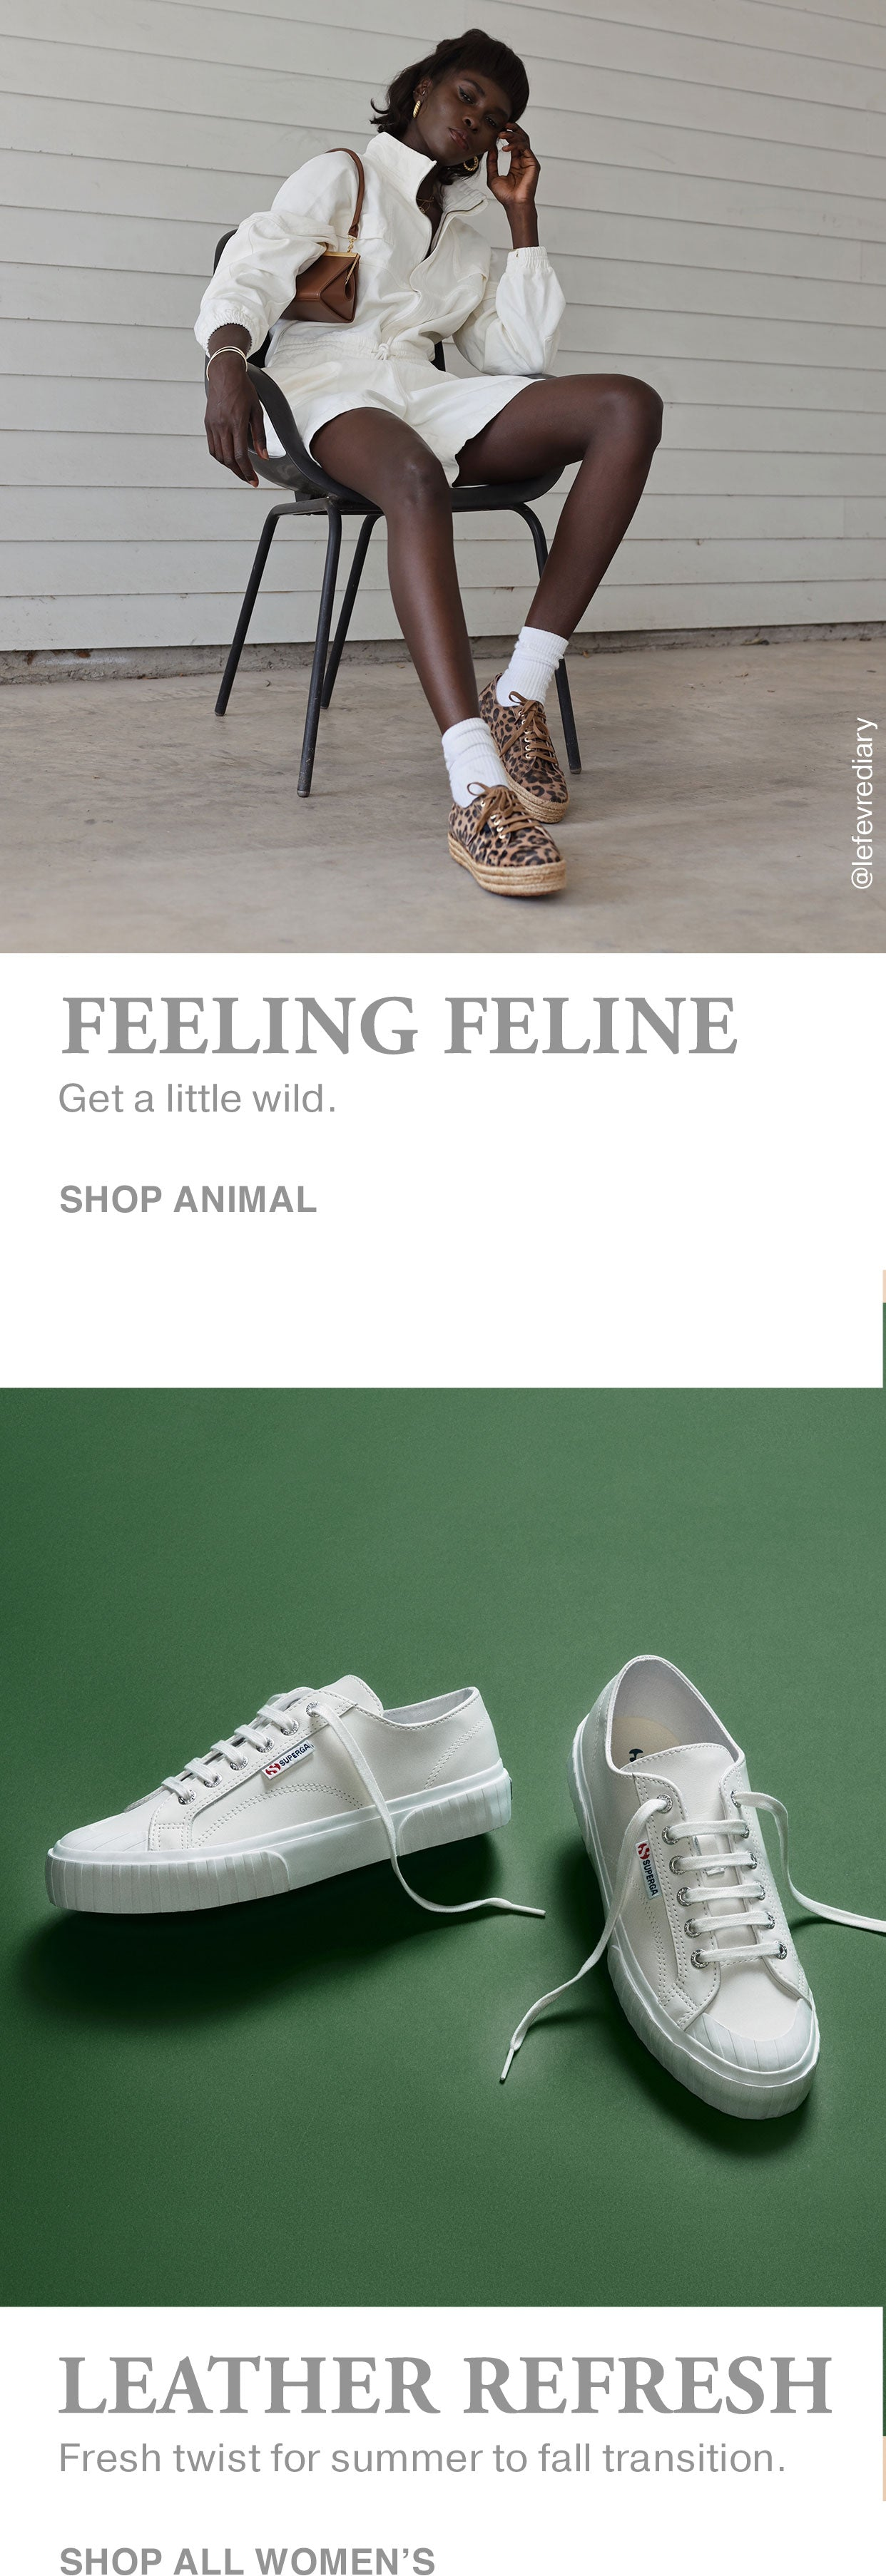 Leather Refresh Feeling Feline Banner Mobile